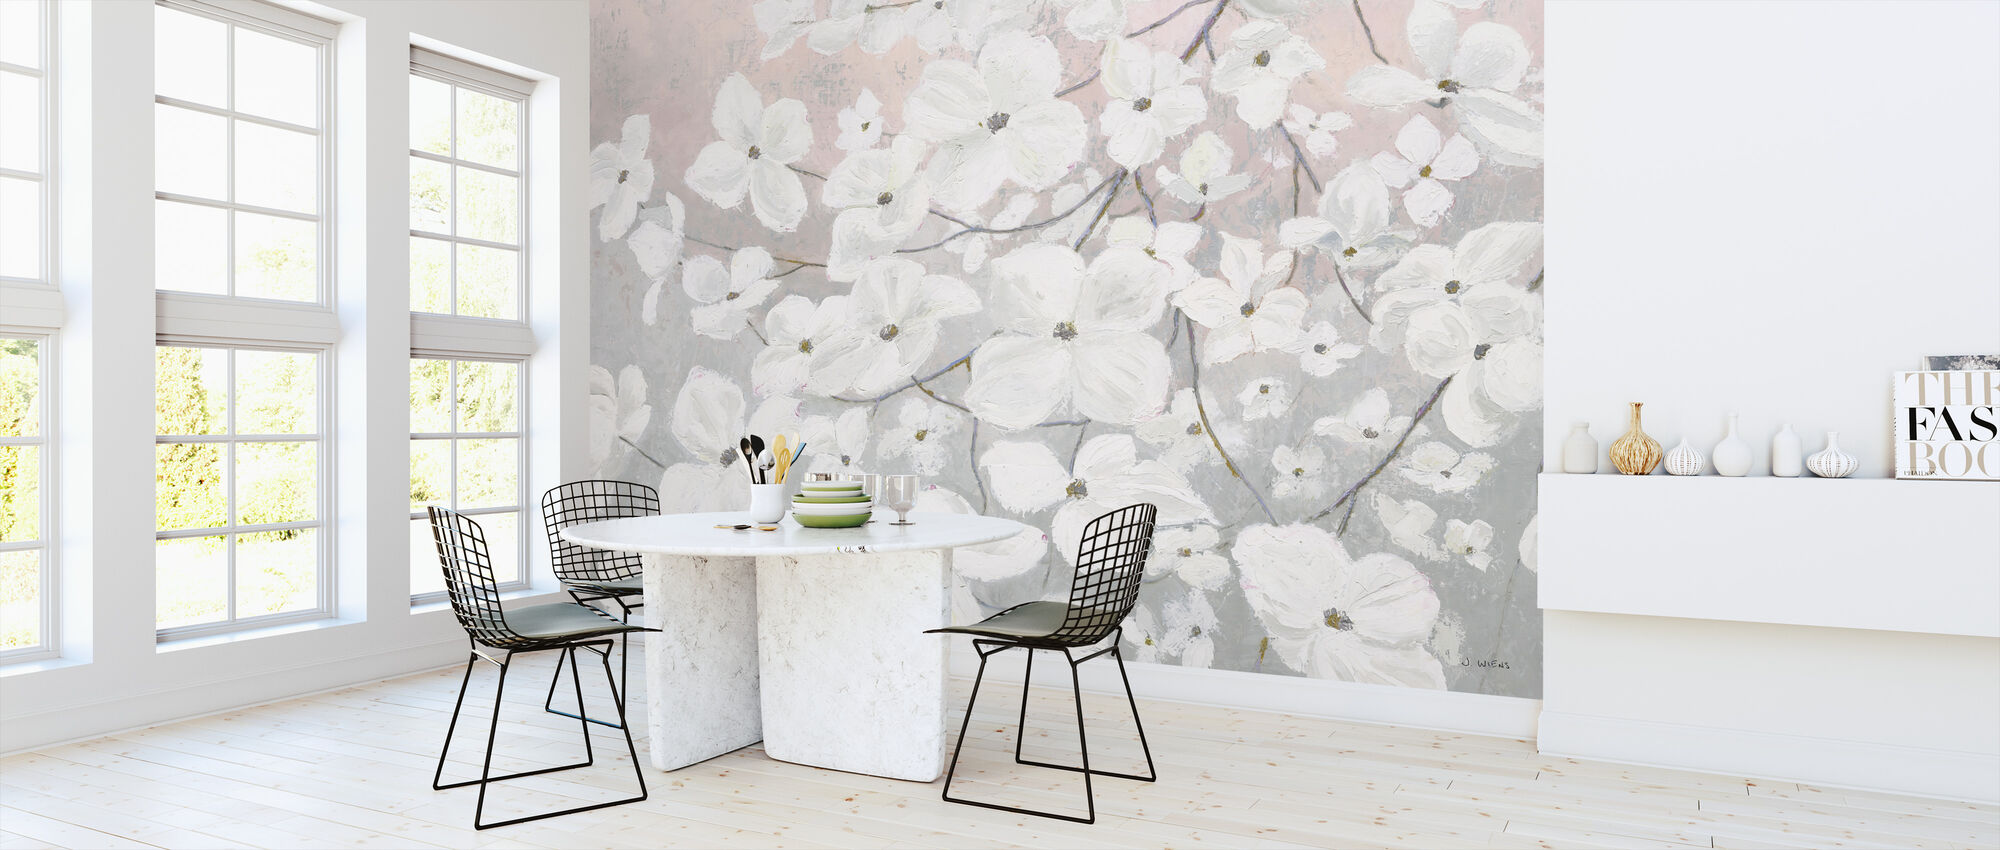 Bringing in Blossoms - Wallpaper - Kitchen